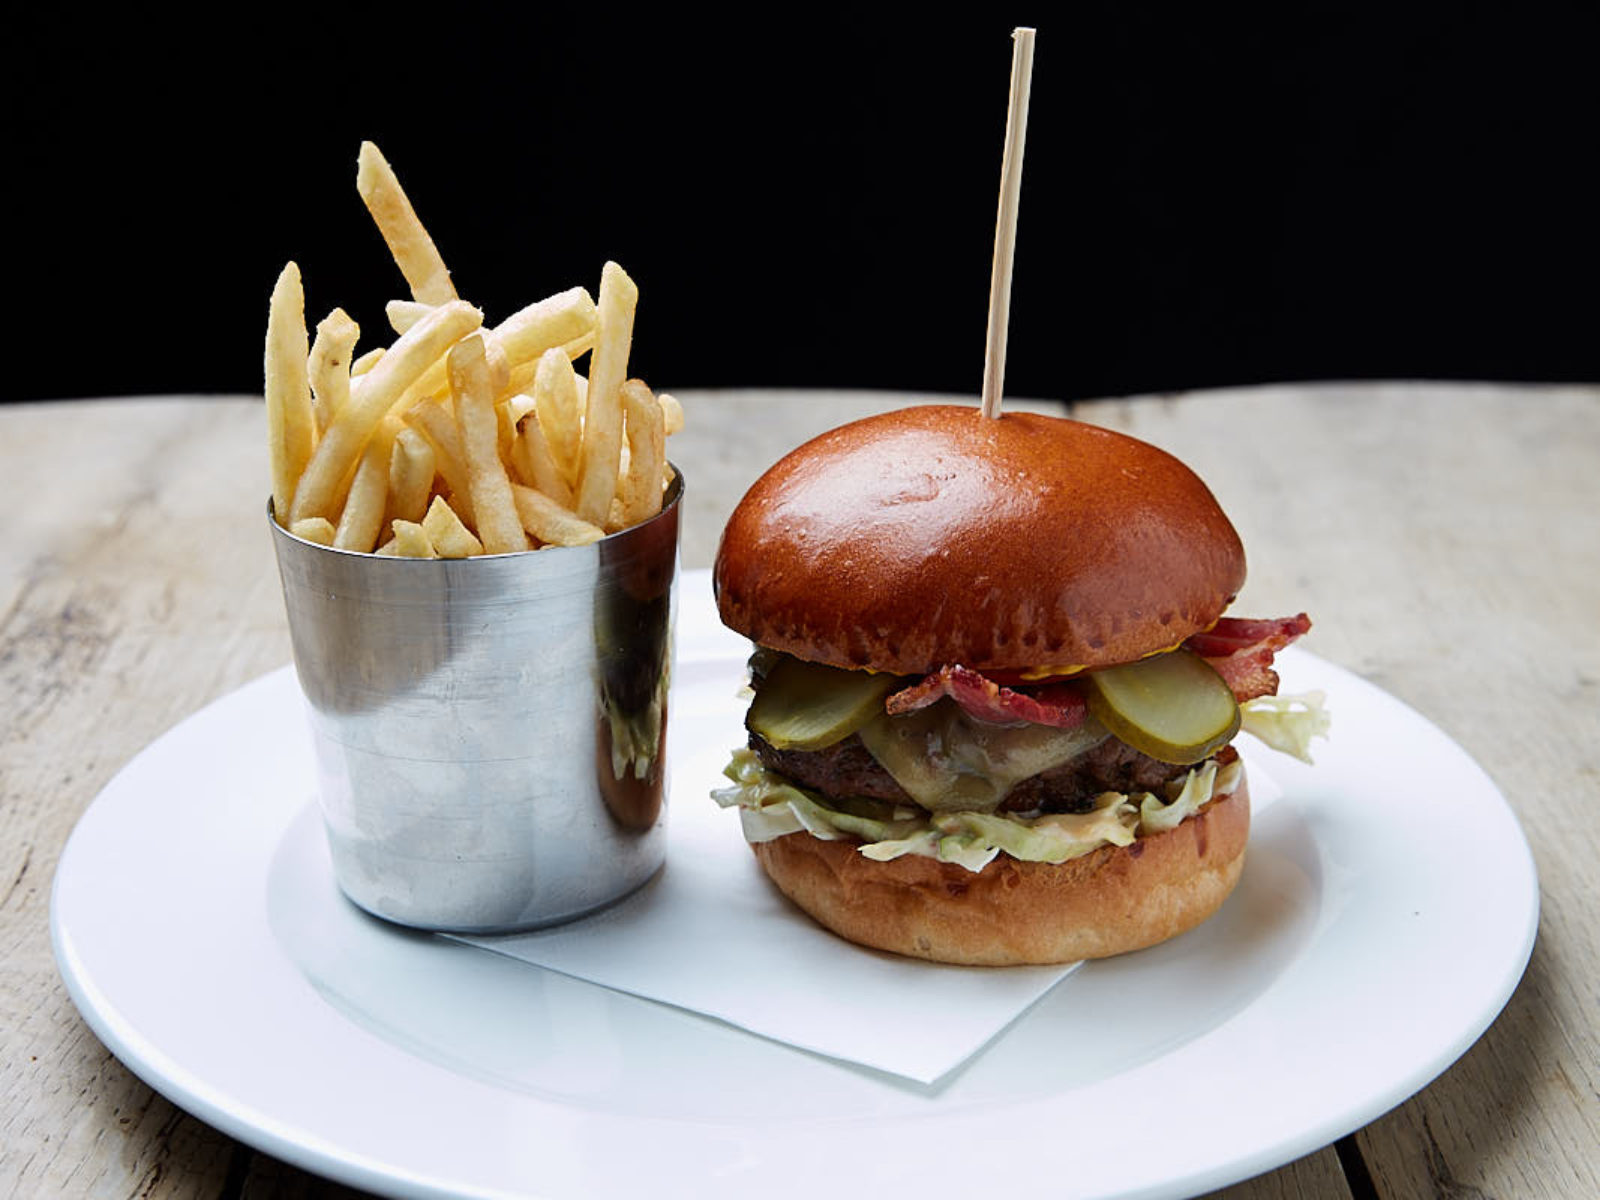 Our delicious beef burger with bacon and skinny fries